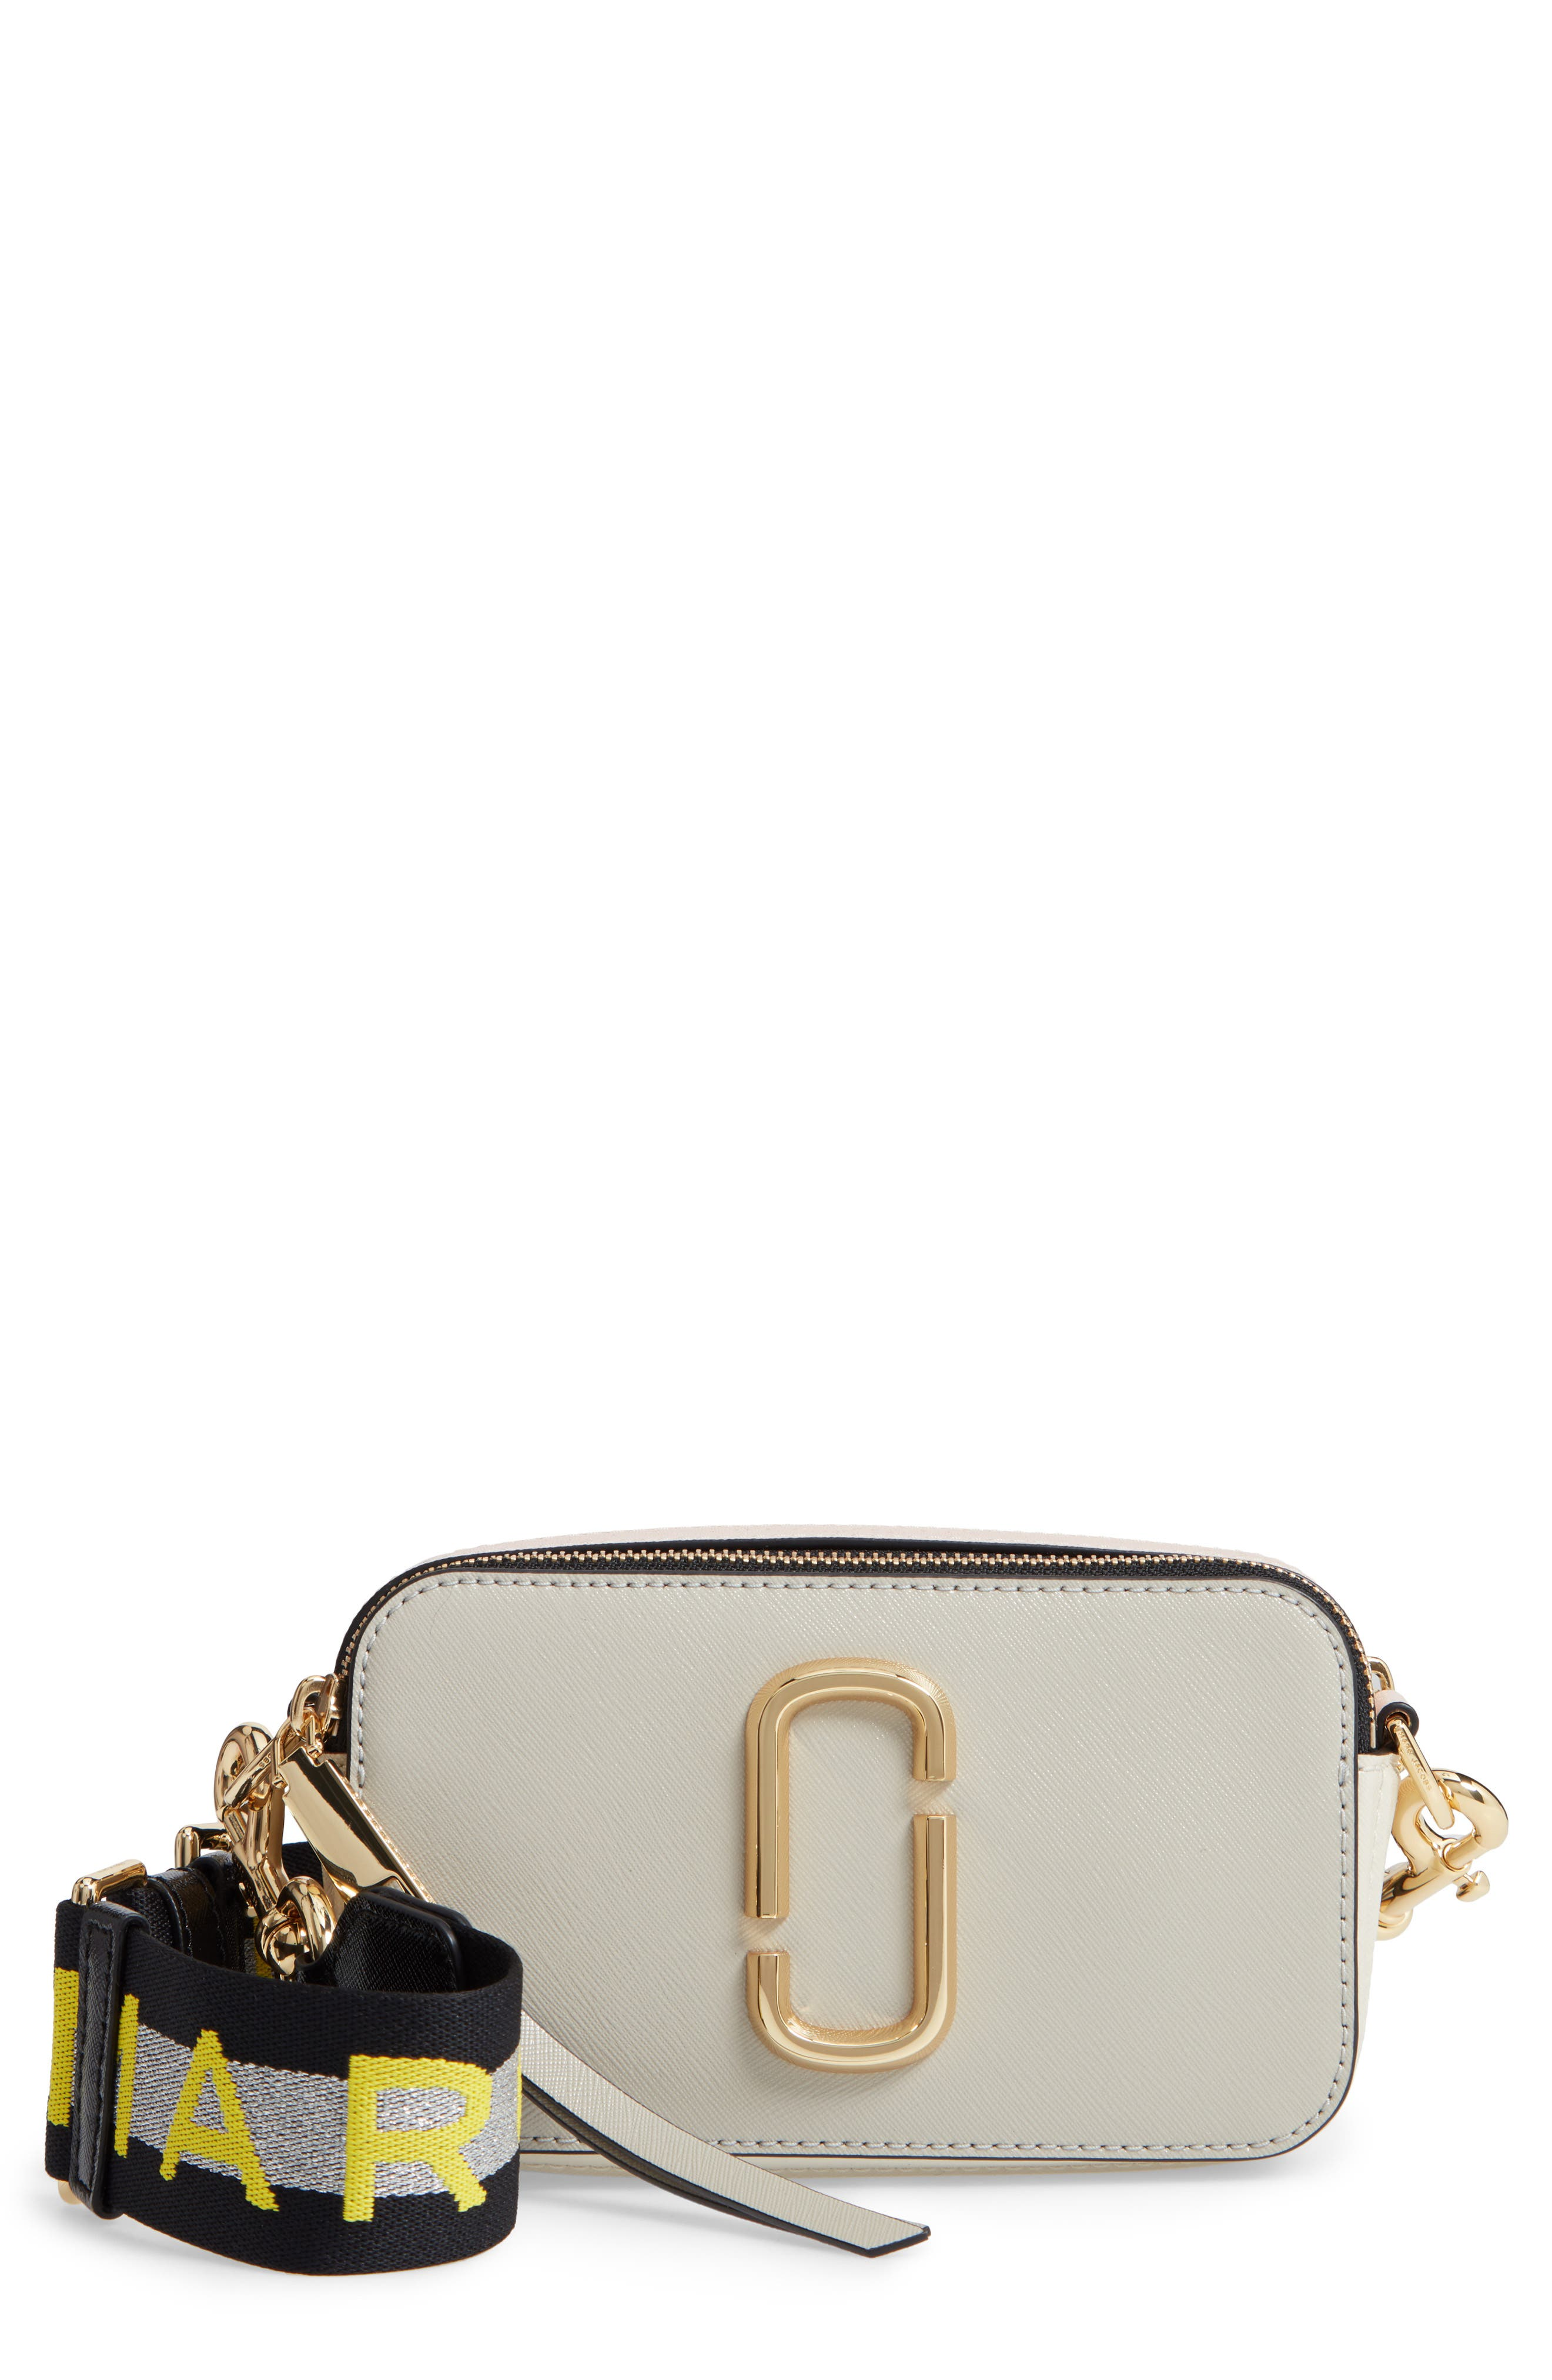 Accessories amp; Clothing Marc Nordstrom Women's Jacobs IqzFY1